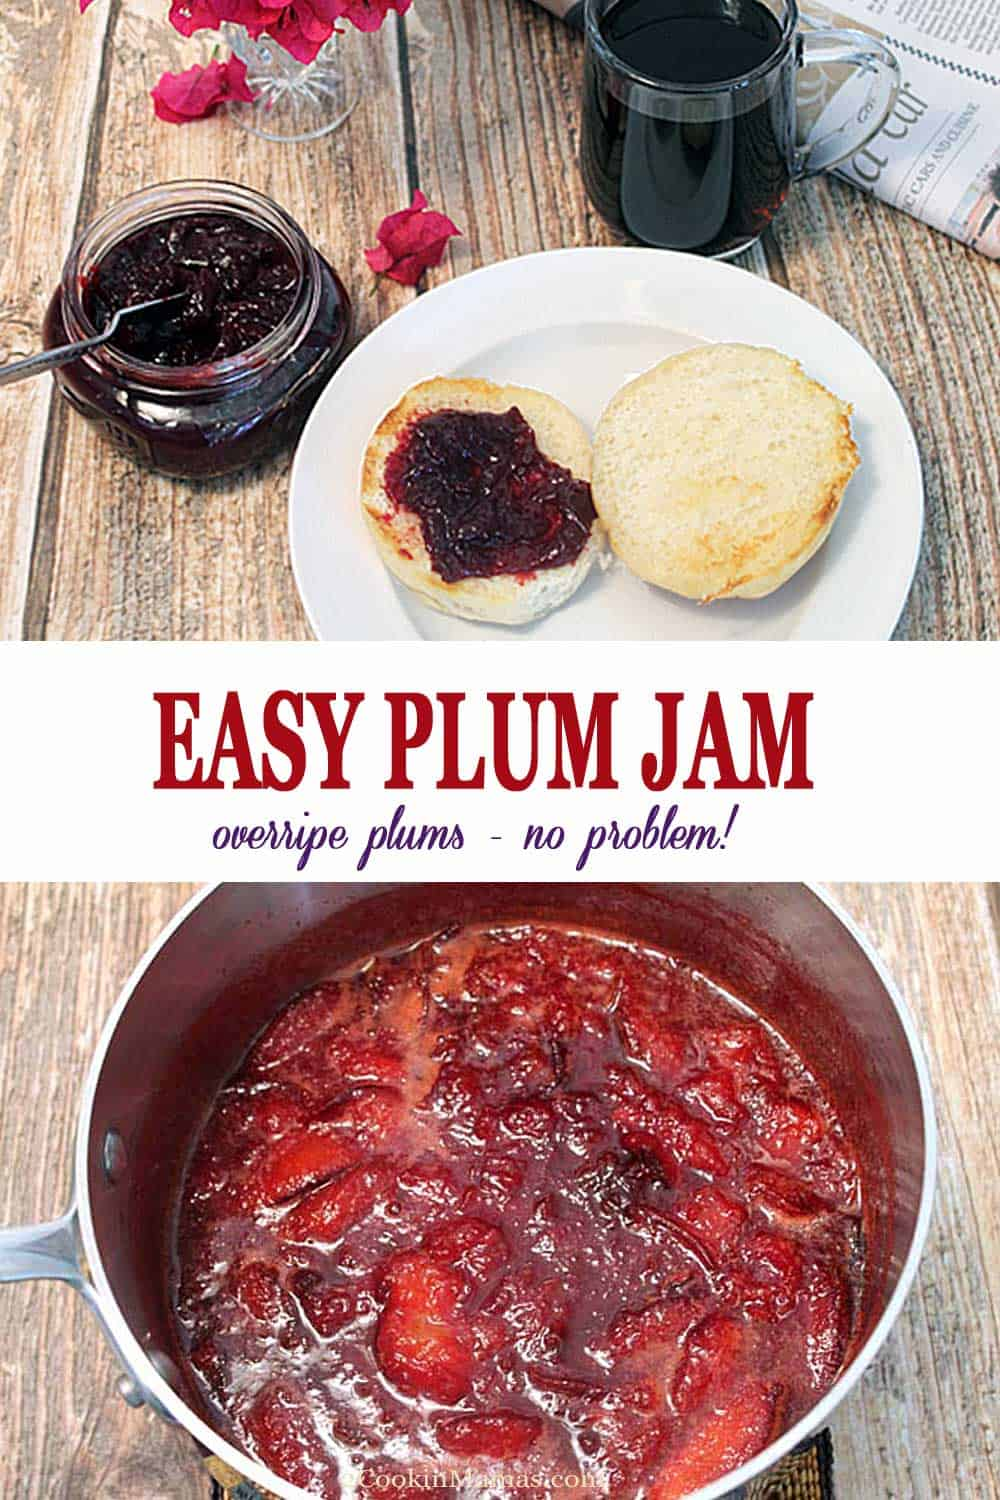 Easy Plum Jam | 2 Cookin Mamas Over ripe plums? No problem! Our sweet & delicious plum jam is so easy to make you'll wonder why you never made it before now. #plumjam #jam #homemadejelly #plums #recipe #breakfast